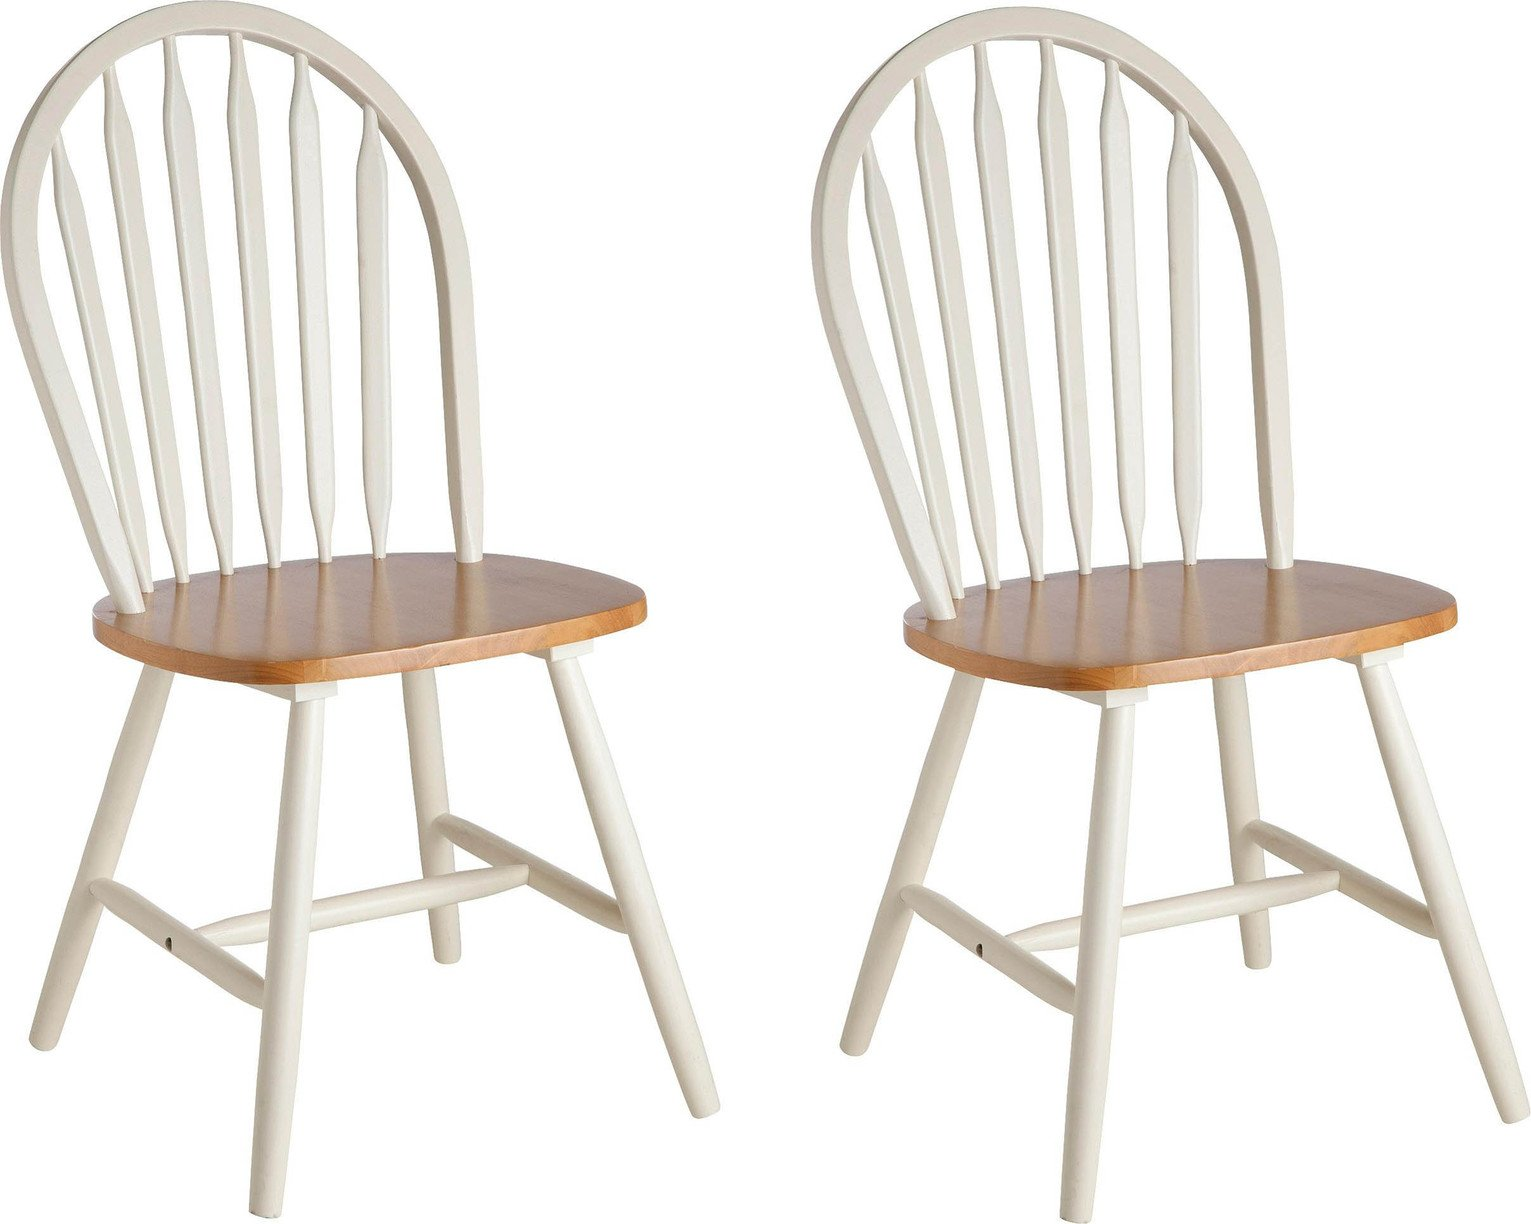 wooden kitchen chairs argos nhs posture chair home kentucky pair of solid wood two tone